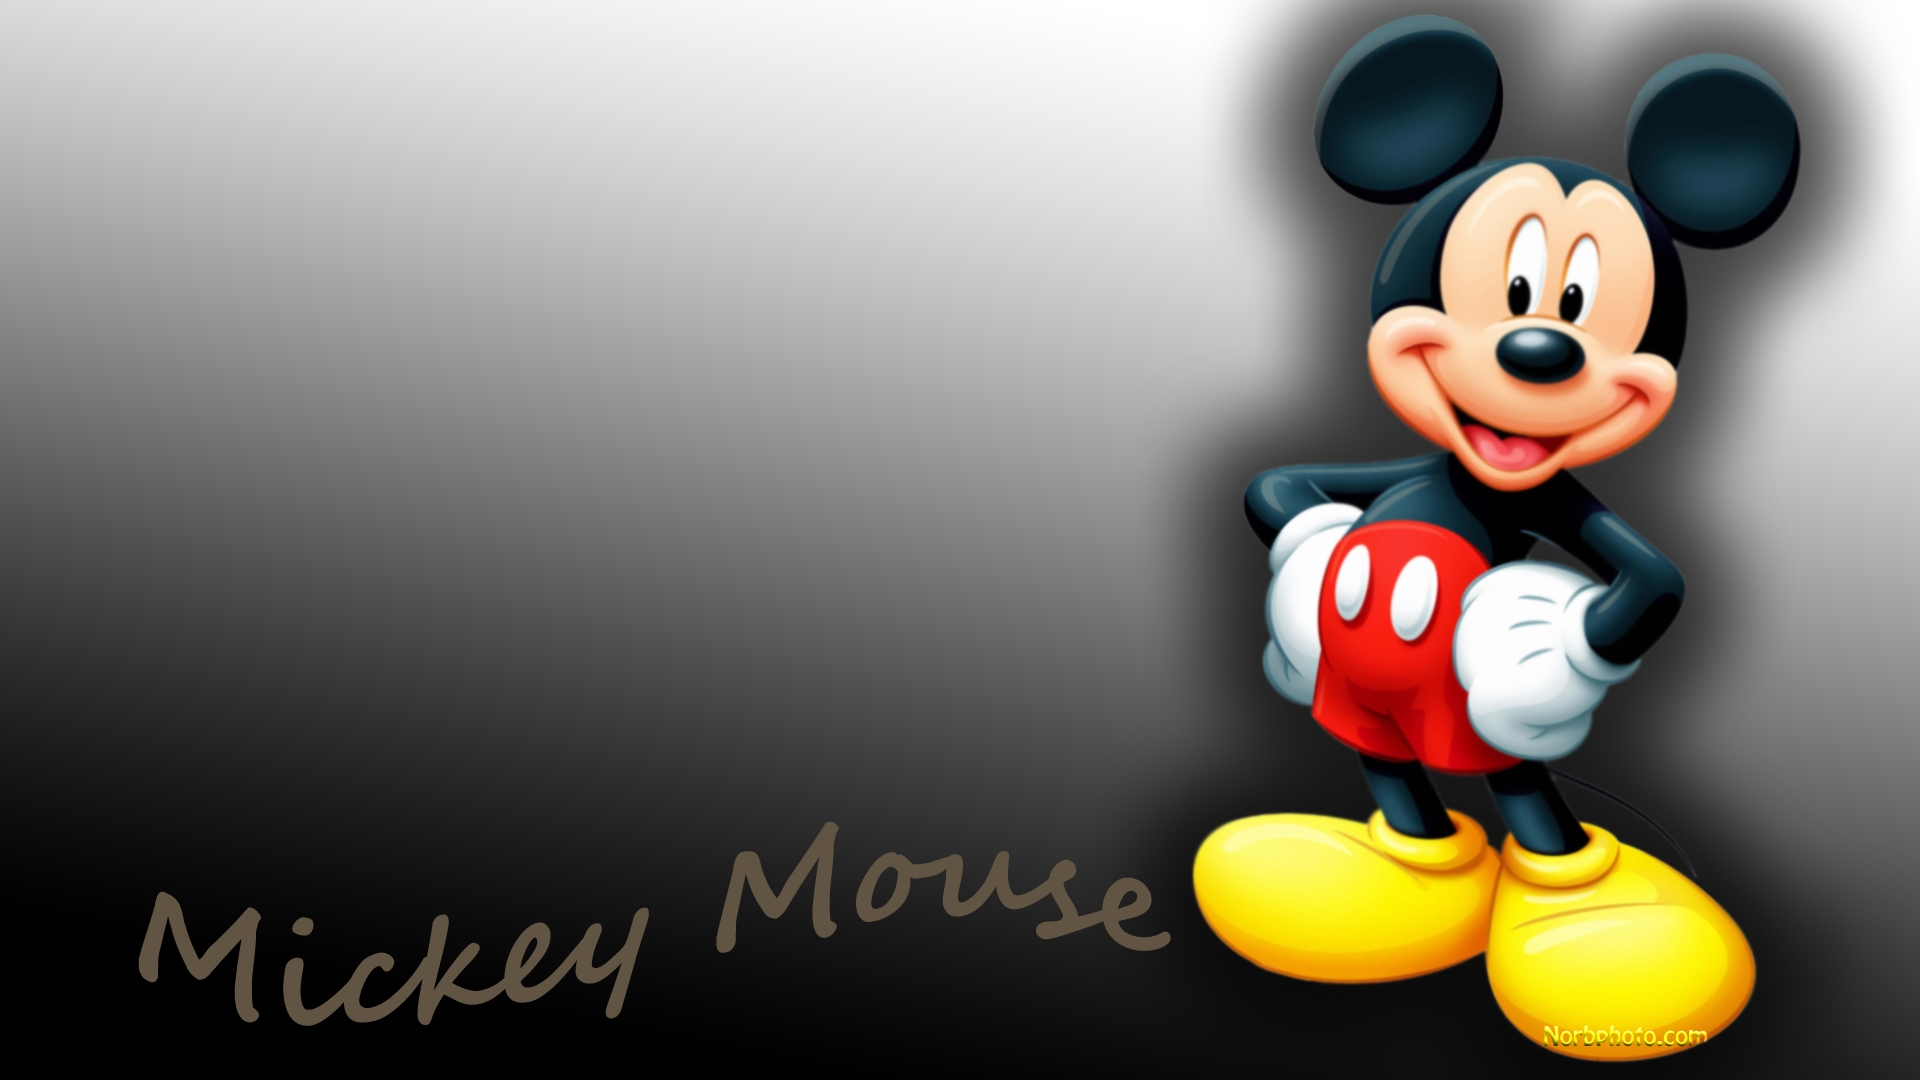 mickey mouset disney free background wall paper